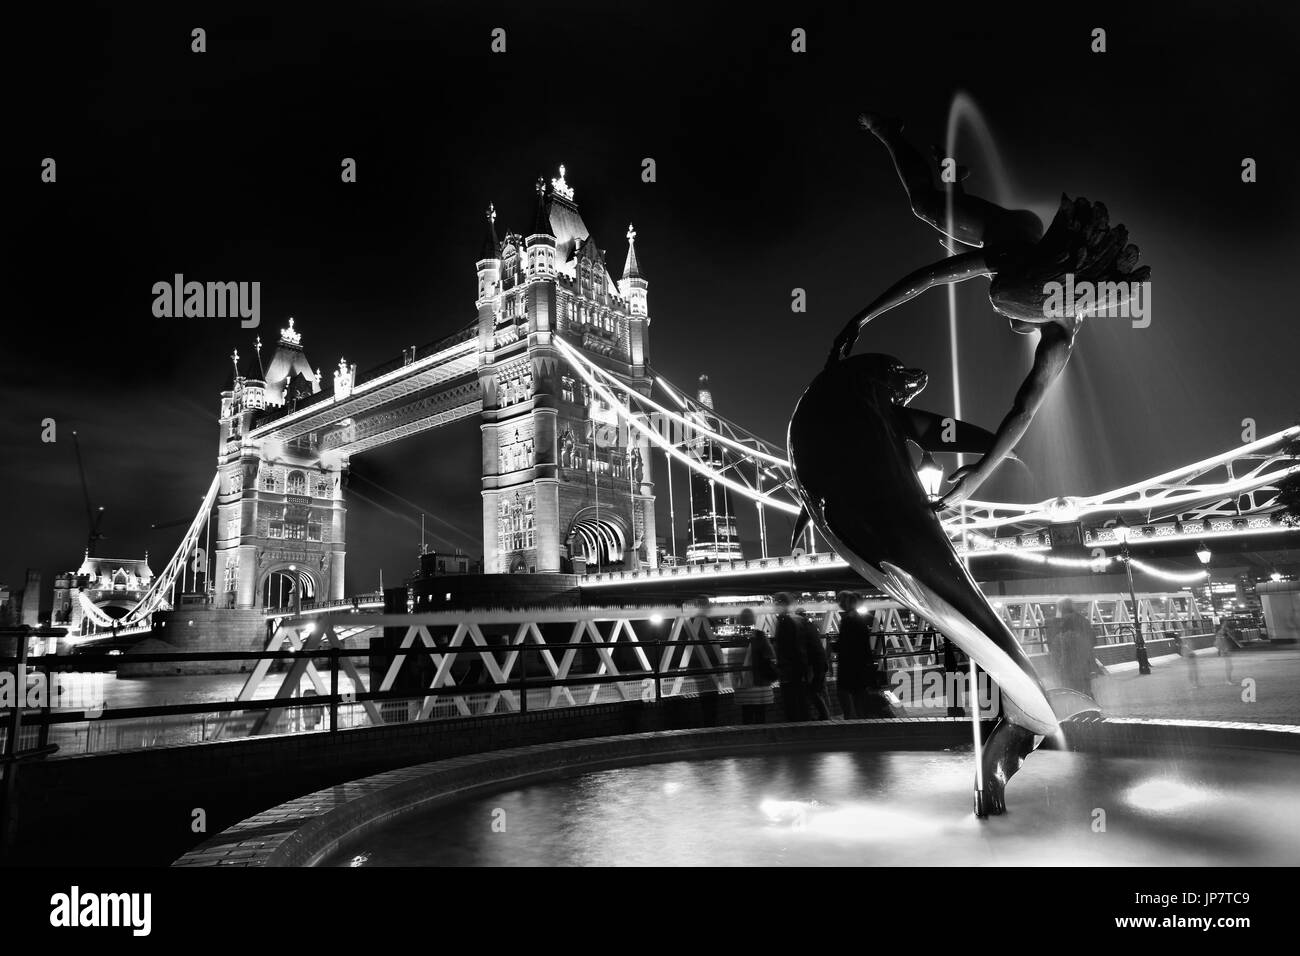 Tower Bridge in London, England, UK - Stock Image